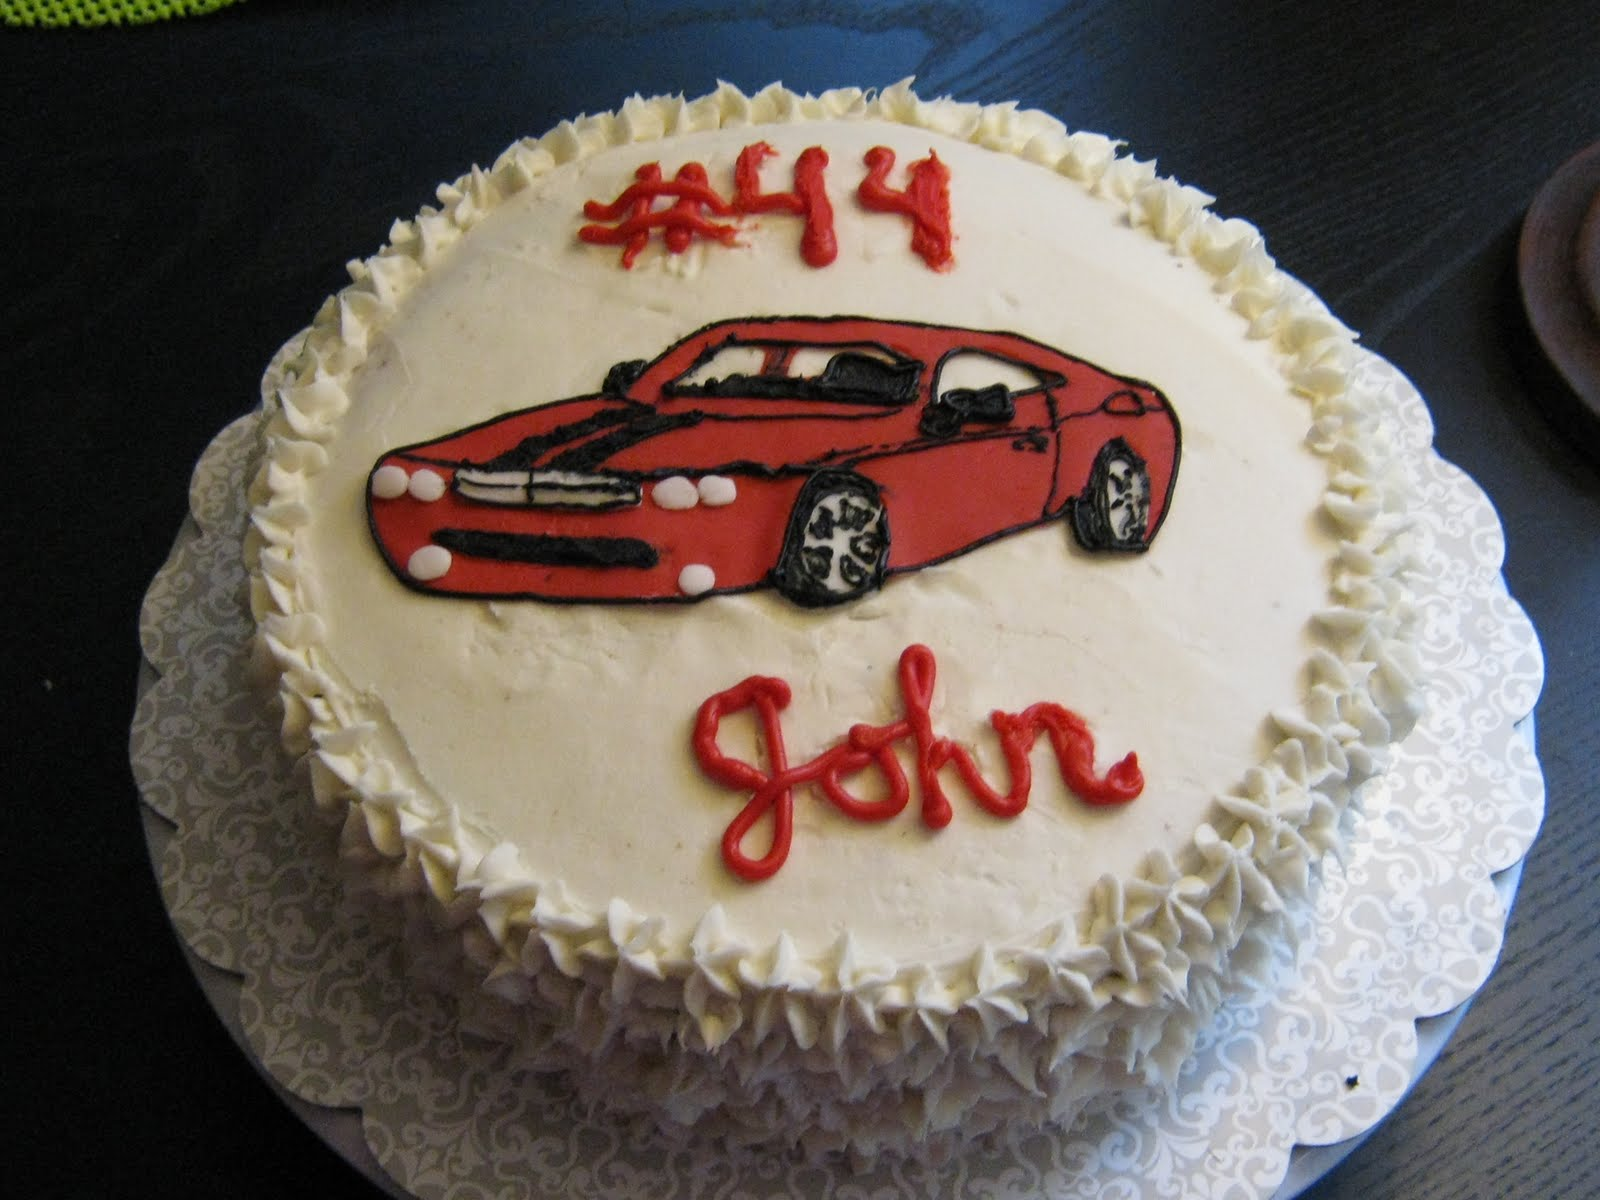 Birthday Cake For John : A New Leaf: John s Birthday Cake